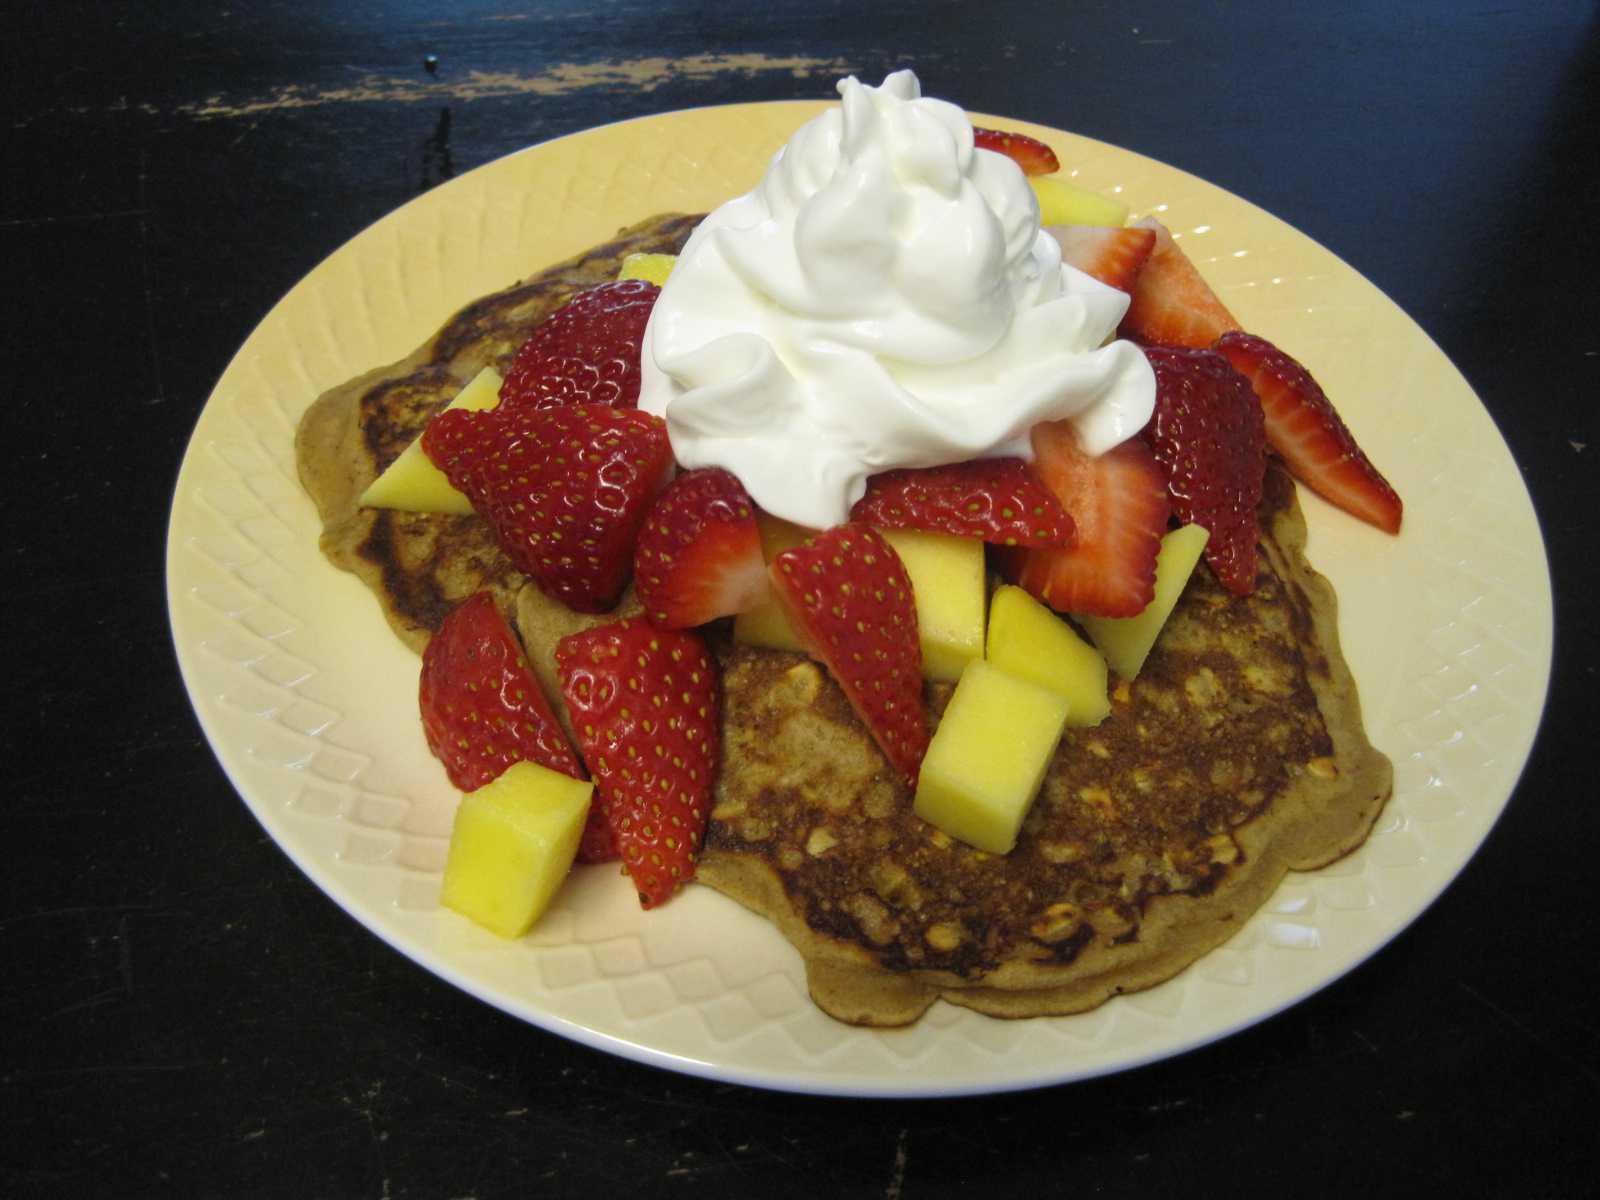 Serve with syrup, powdered sugar, honey, or fruit.